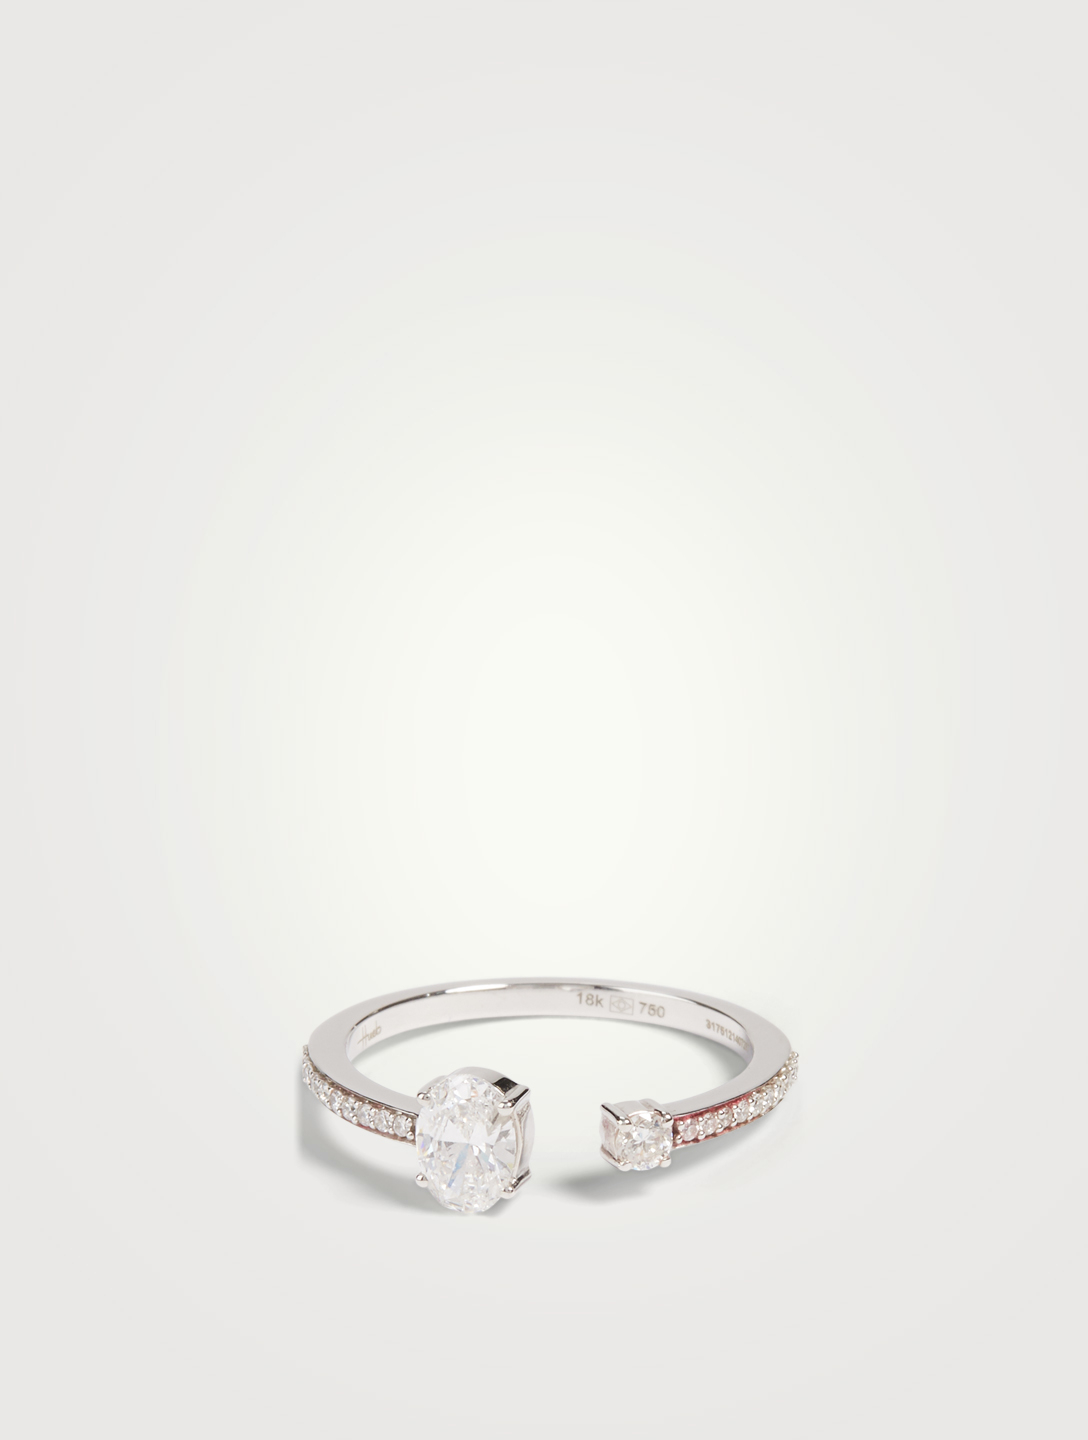 HUEB Bague Spectrum en or blanc 18 ct sertie de diamants Femmes Métallique